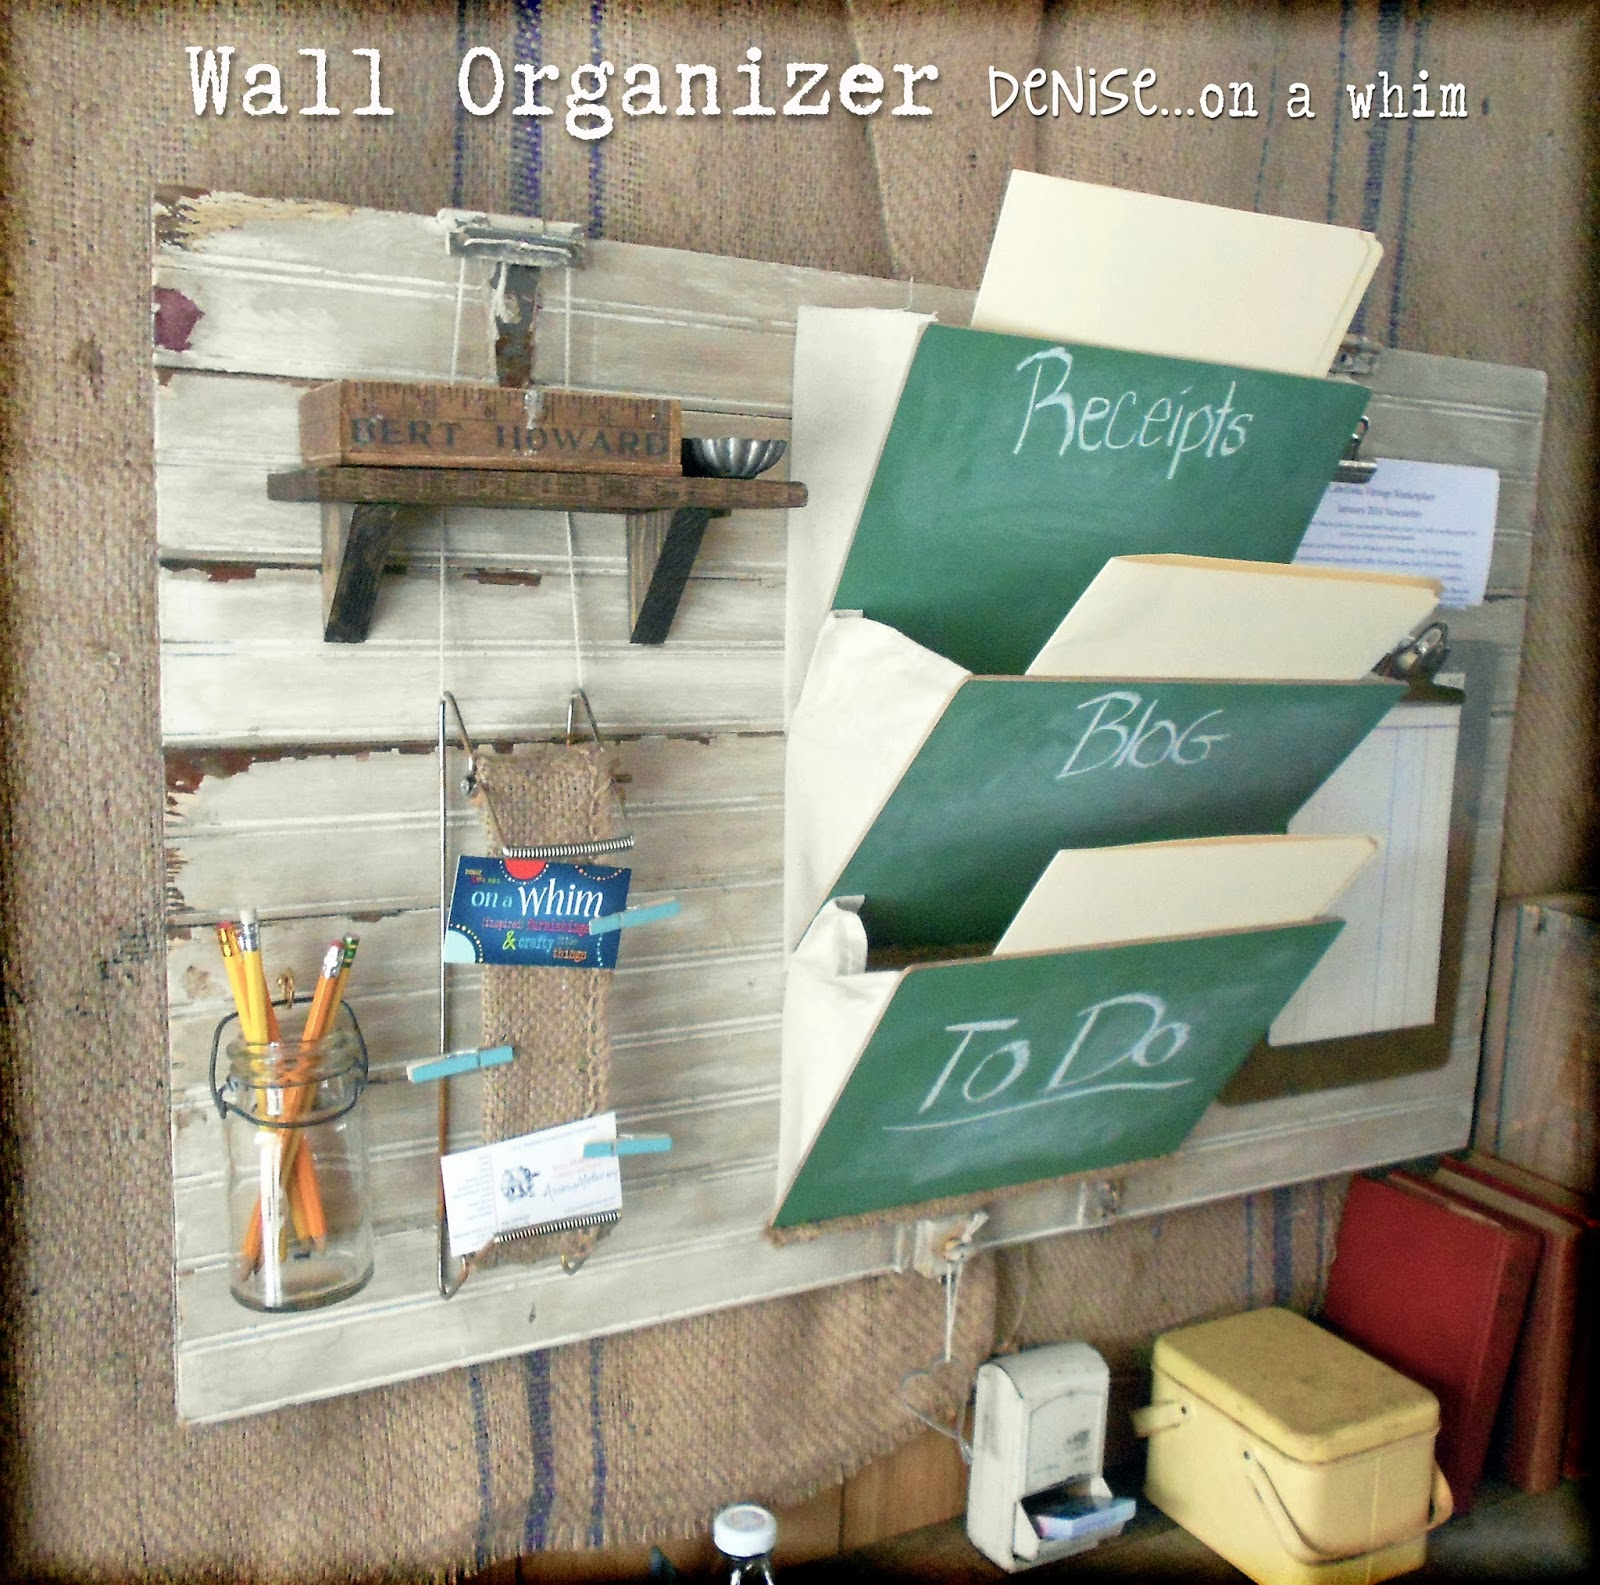 Wall Organizer Made from Junk and Thrifty Finds via http://deniseonawhim.blogspot.com